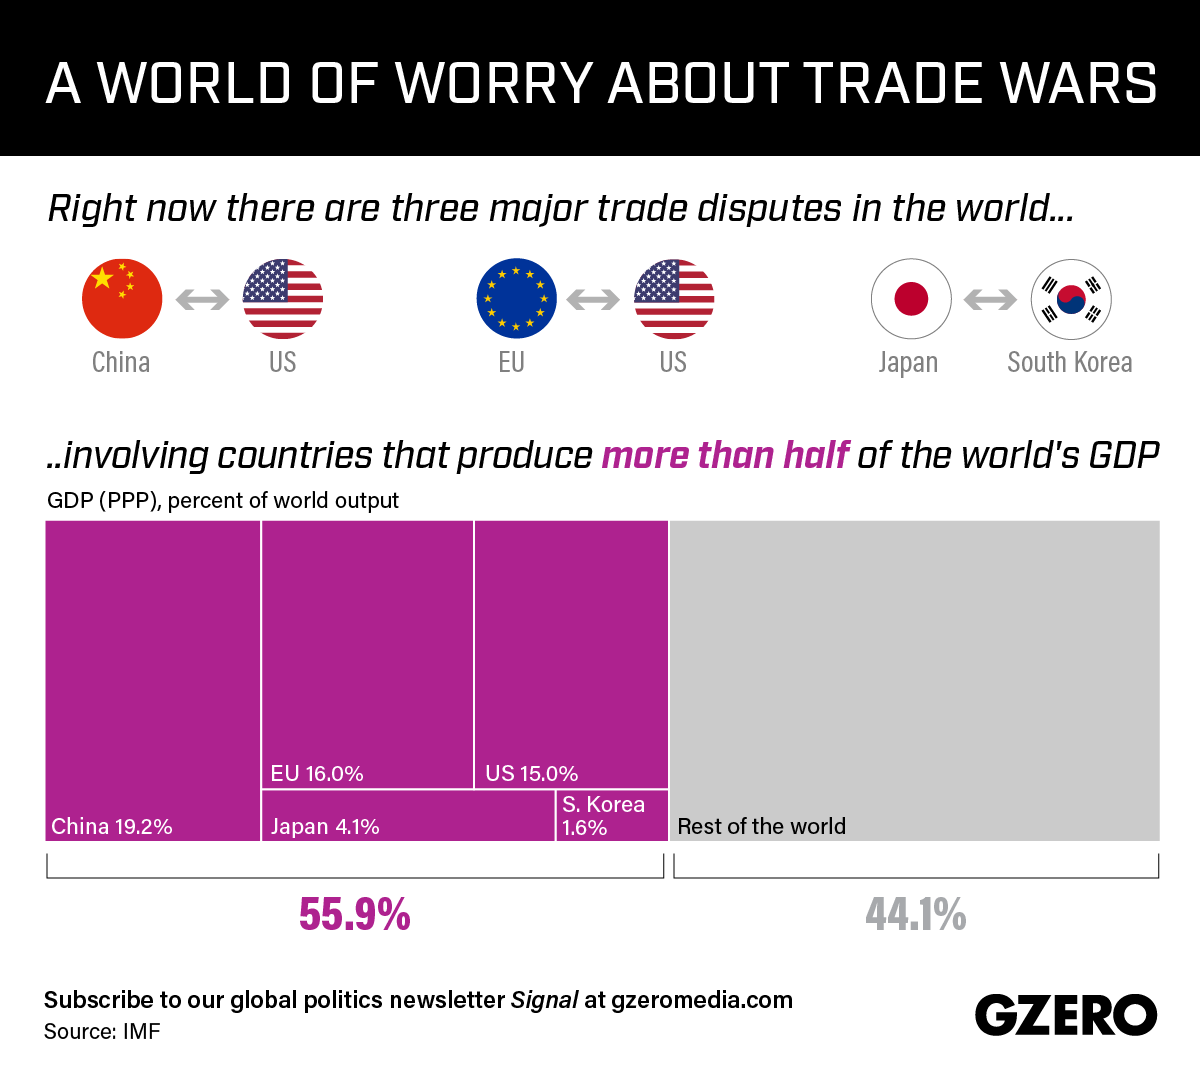 These Three Disputes Affect More Than Half of the World Economy